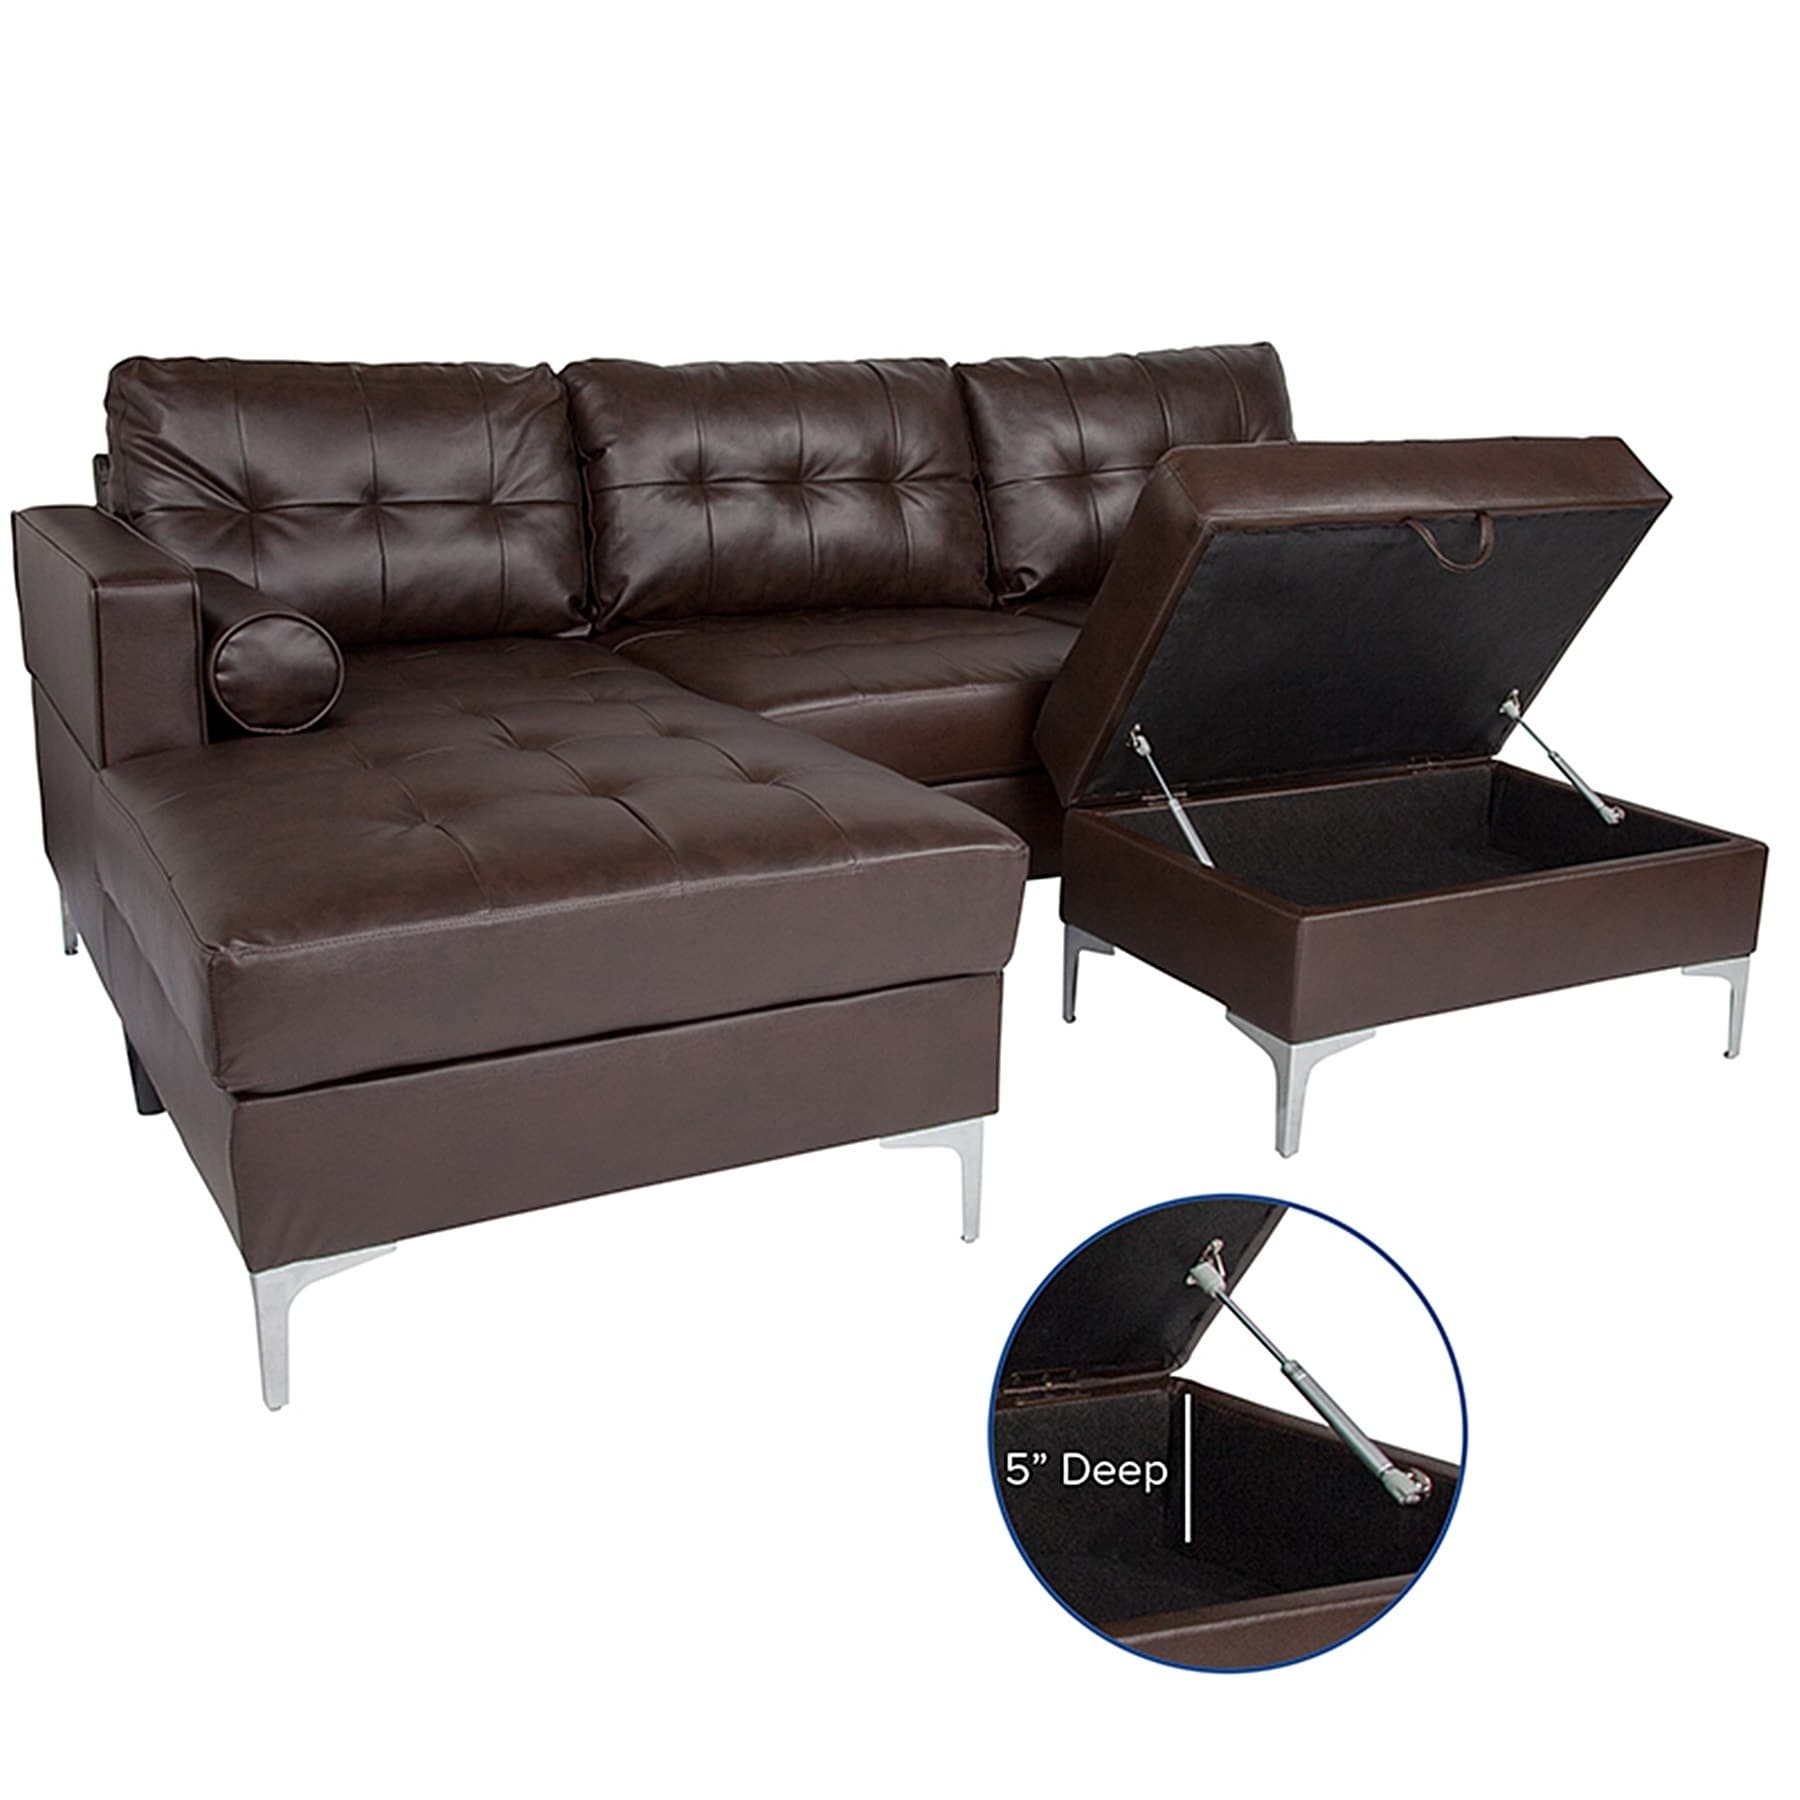 Bellmore 3-Piece Brown Leather Sectional Sofa with Left Facing Chaise and  Storage Ottoman